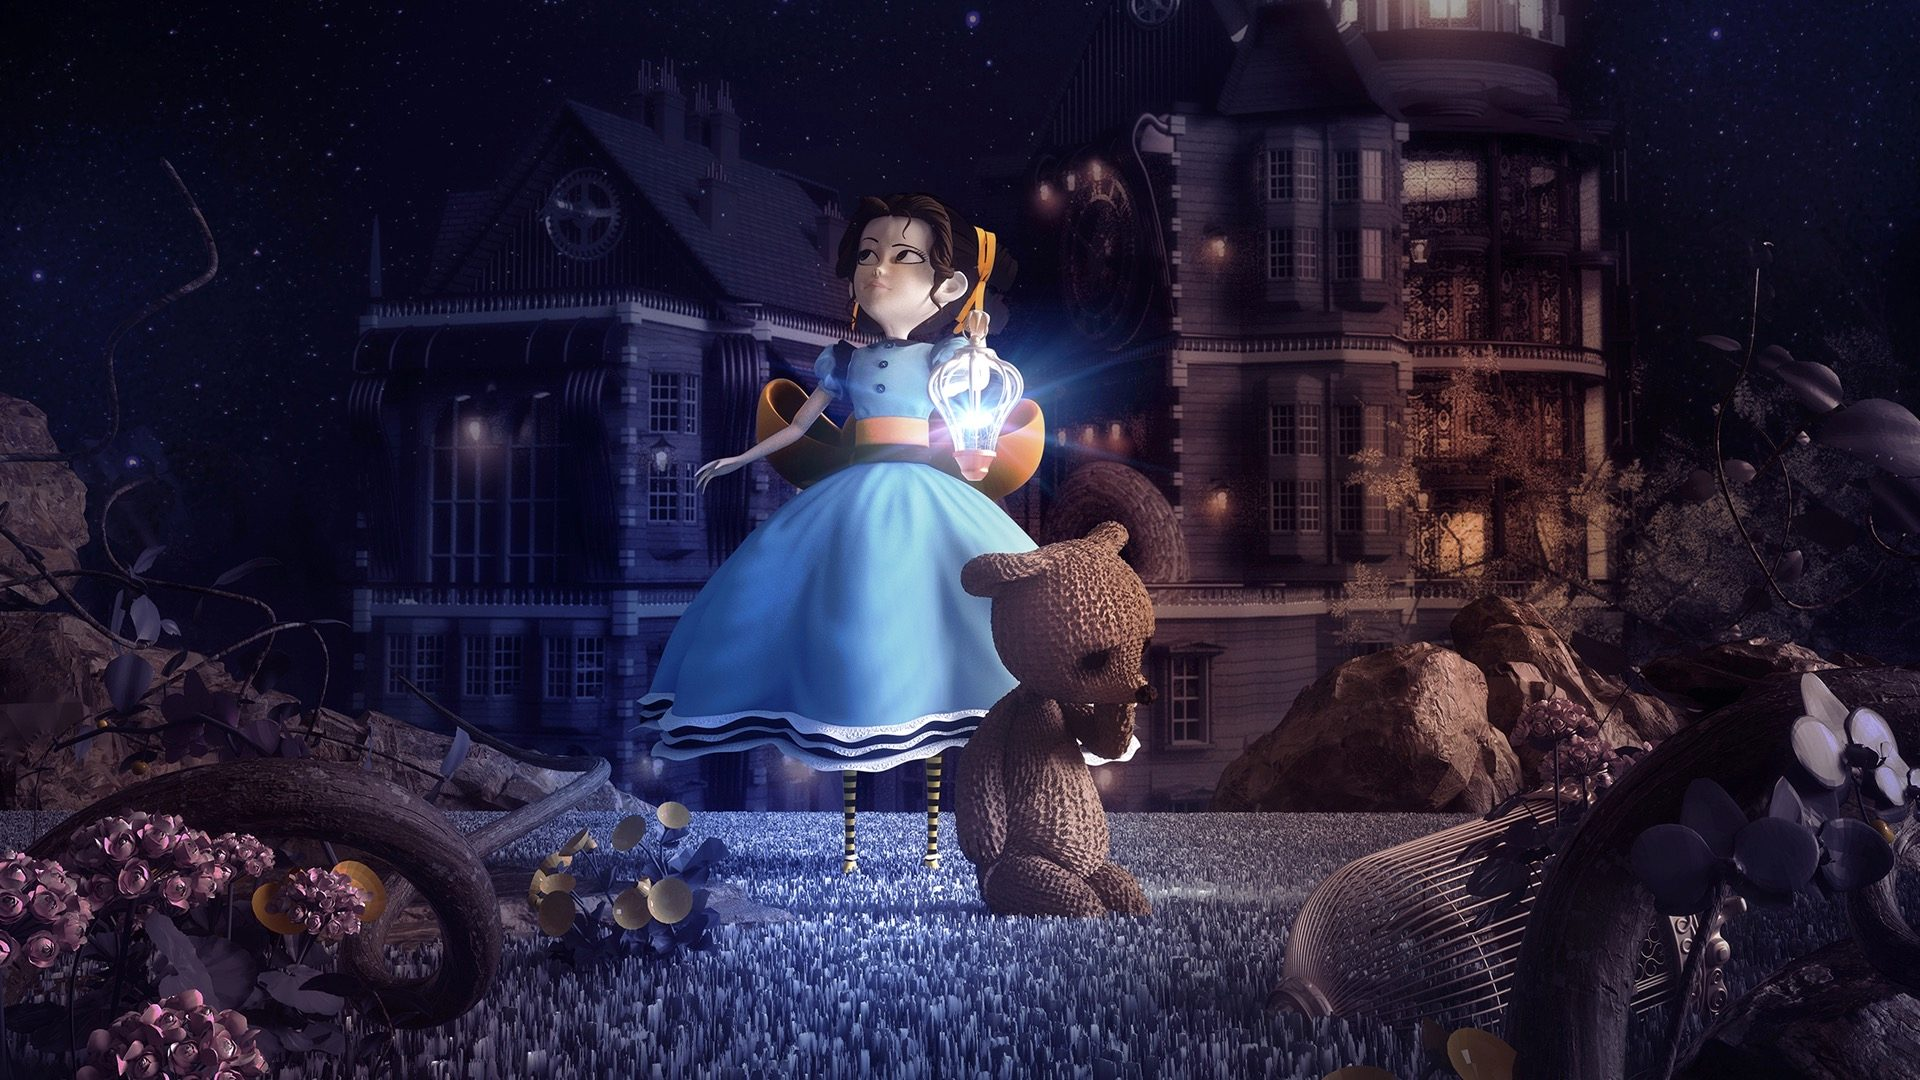 introducing-tandem:-a-tale-of-shadows,-out-oct-21-on-ps4